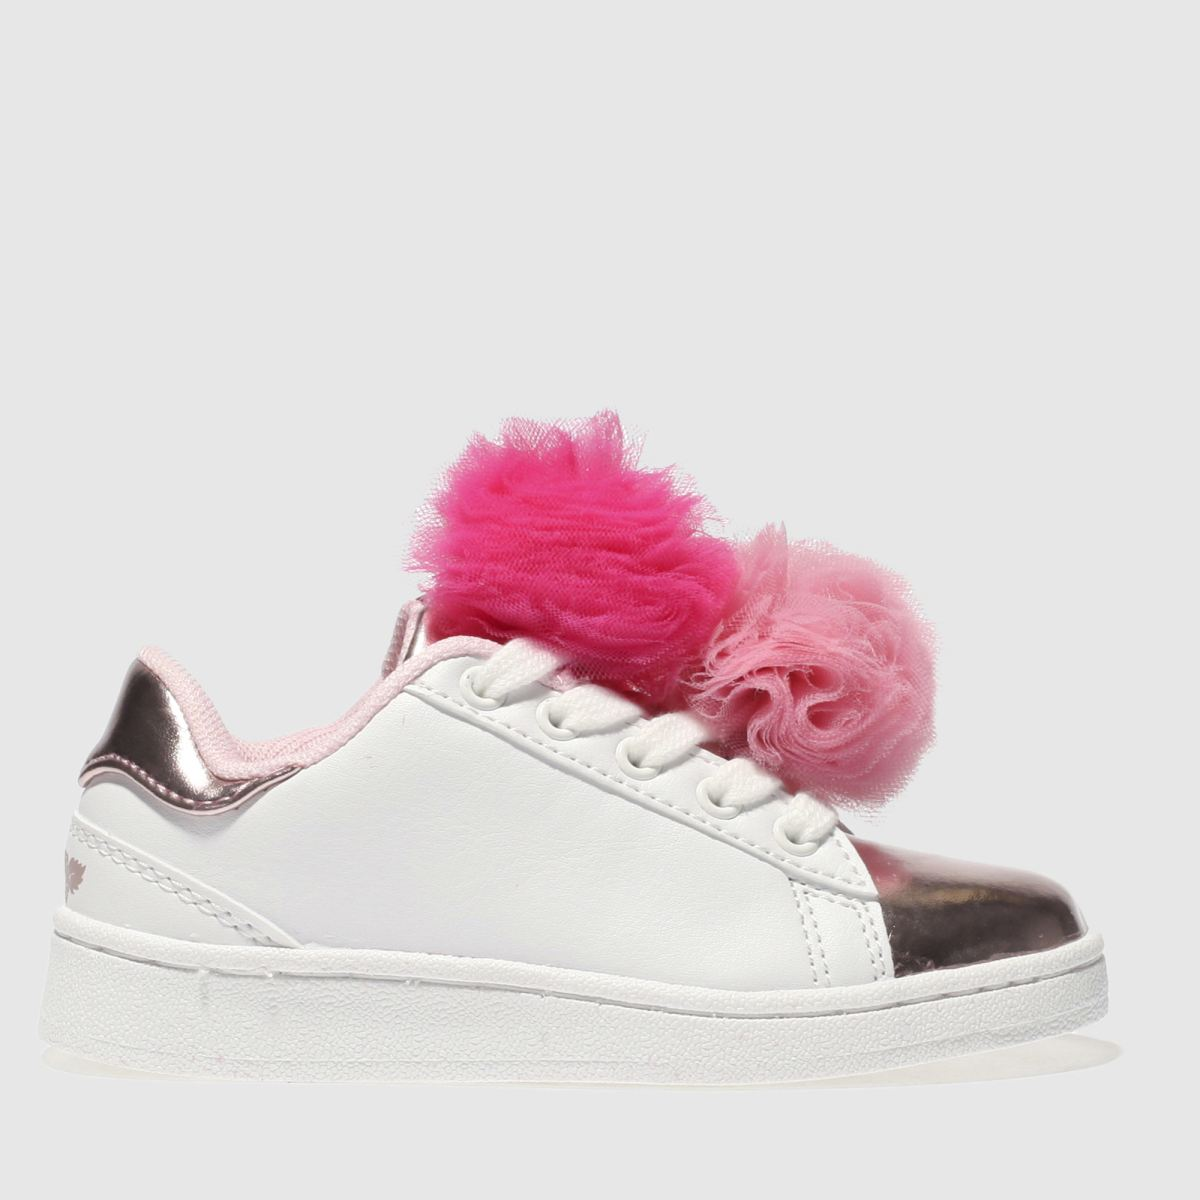 Lelli Kelly Lelli Kelly  White & Pink Pon Pon Sneaker Girls Toddler Trainers